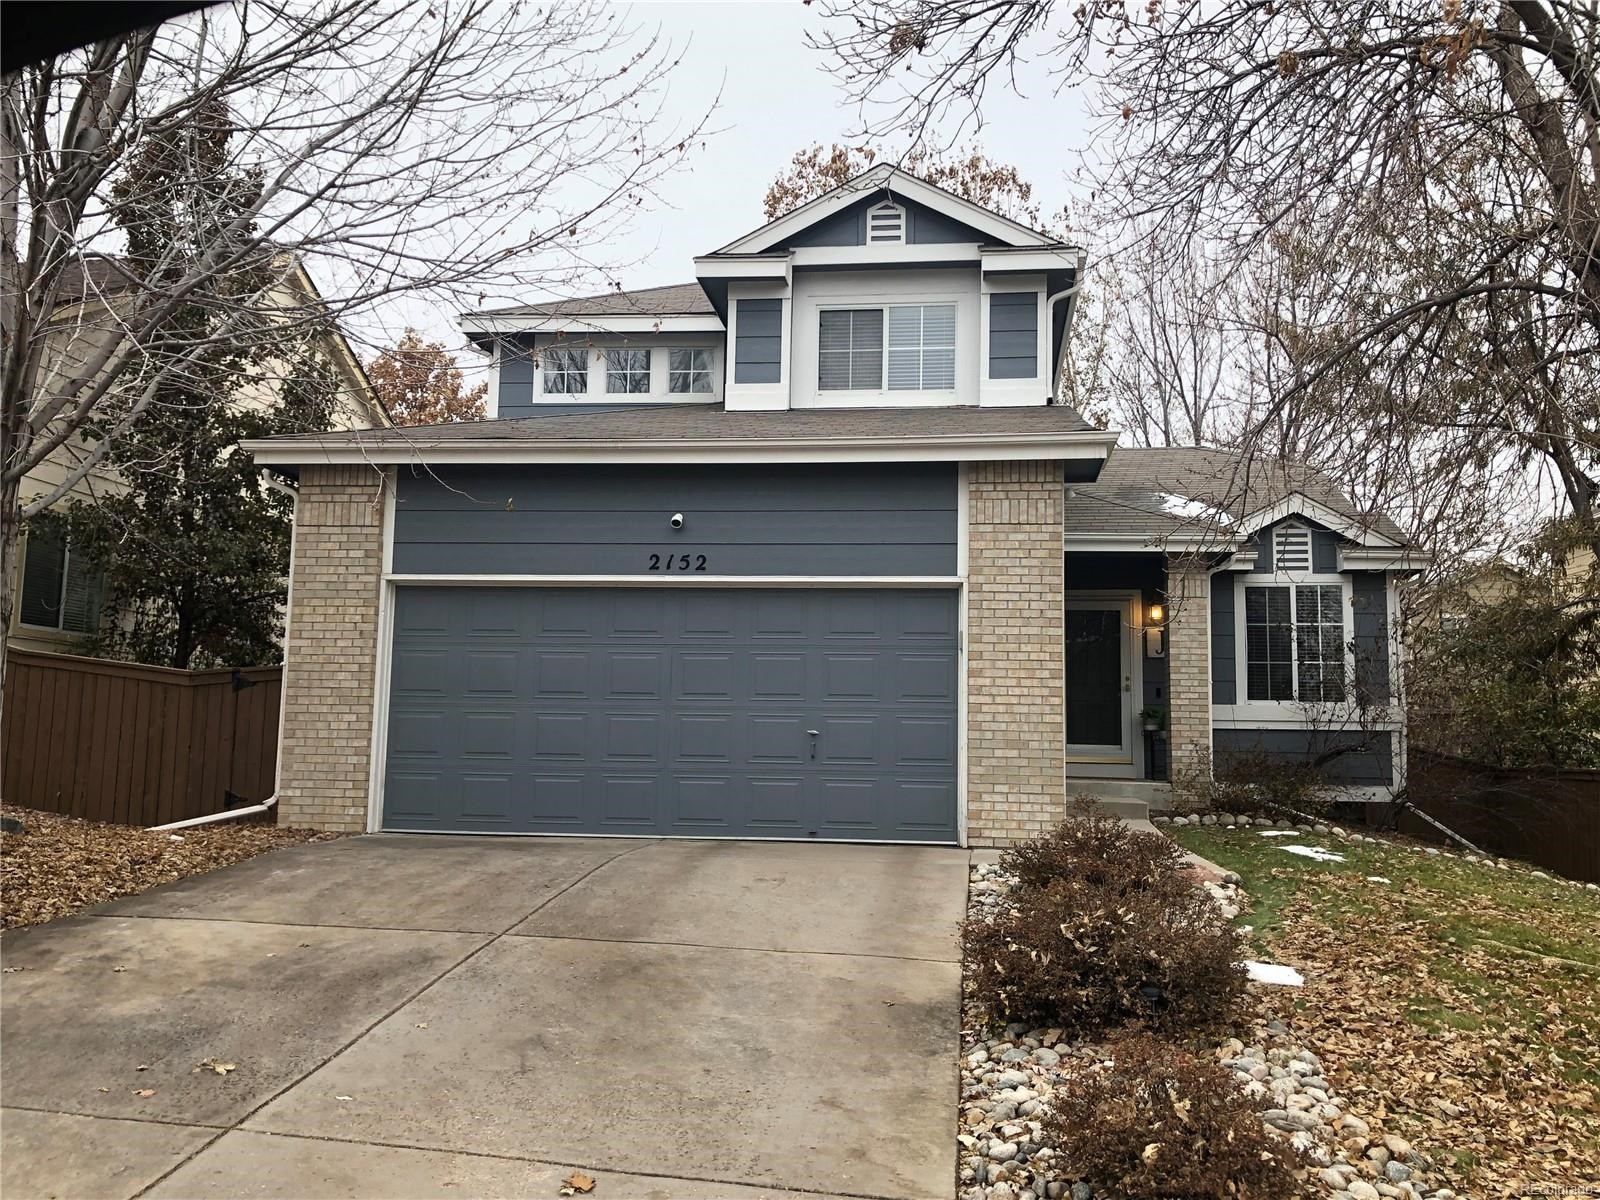 MLS# 8484969 - 3 - 2152 Gold Dust Trail, Highlands Ranch, CO 80129